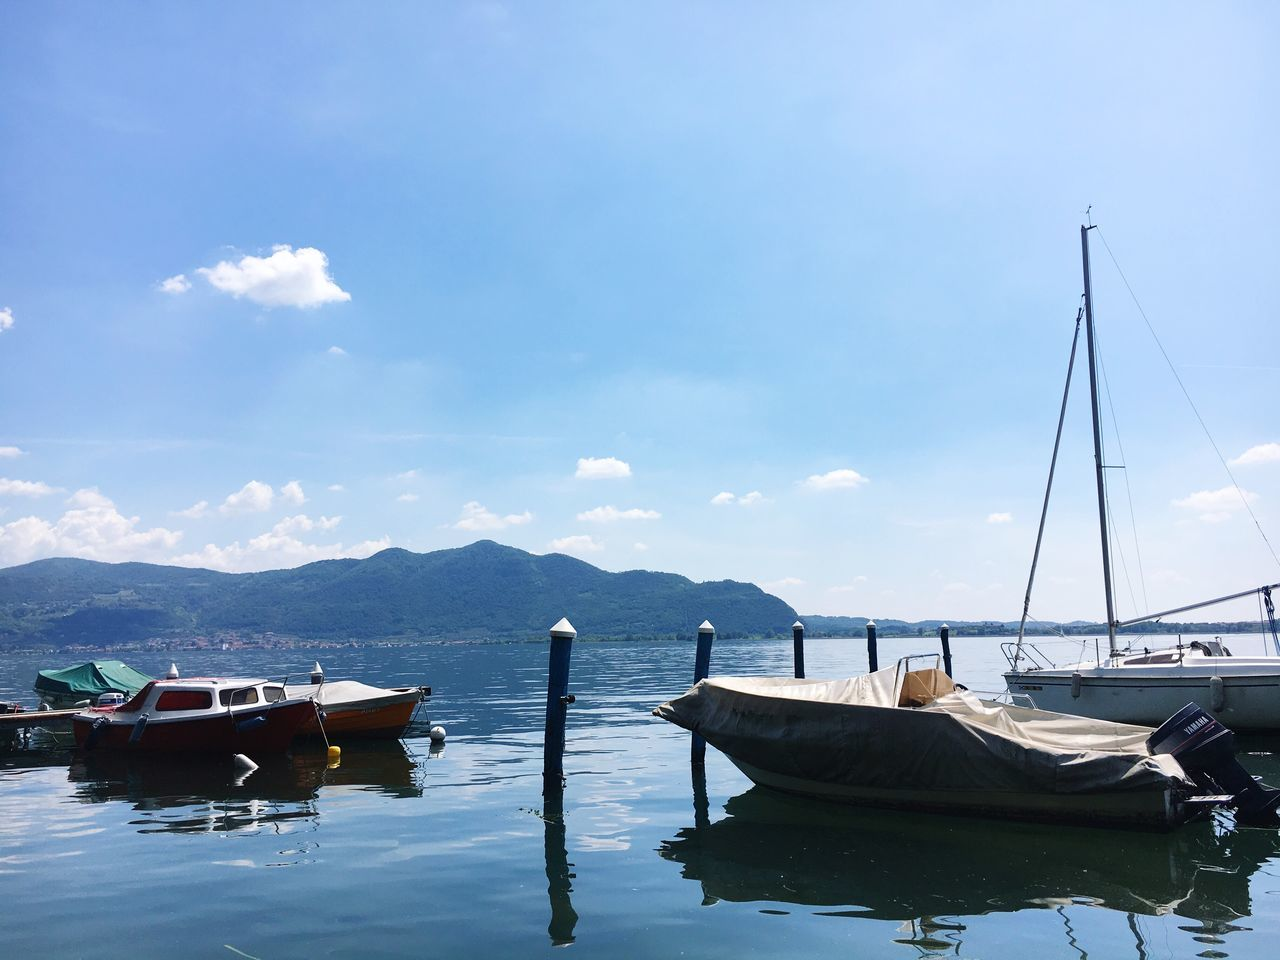 Riva. Nautical Vessel Transportation Mode Of Transport Moored Water Boat Sky Mountain Nature Cloud - Sky No People Day Mountain Range Outdoors Scenics Tranquility Sea Beauty In Nature Mast Lake Old Boat Speedboat